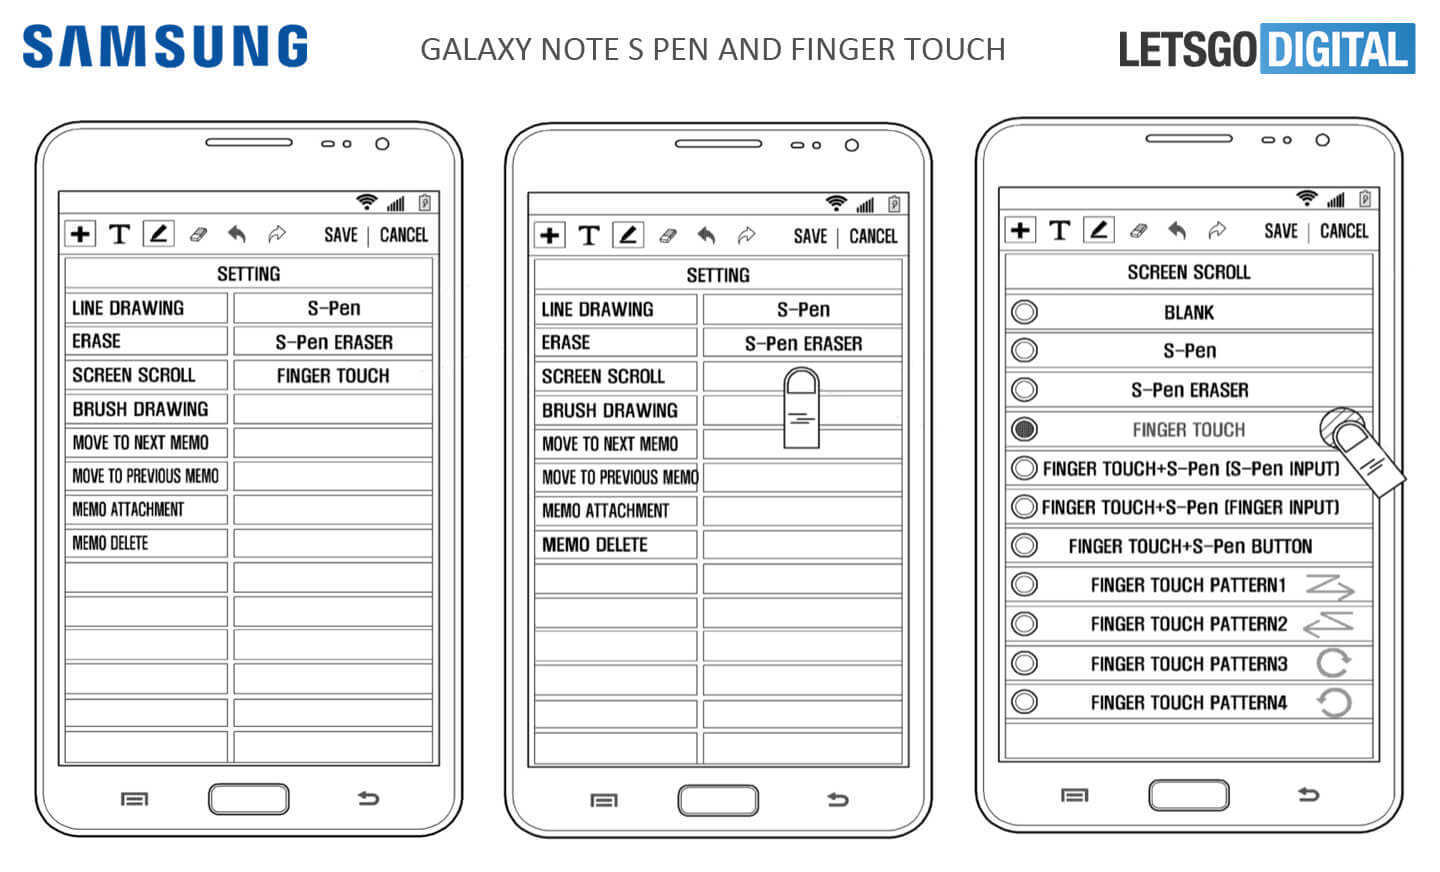 Galaxy Note 9 could make S Pen and finger work together